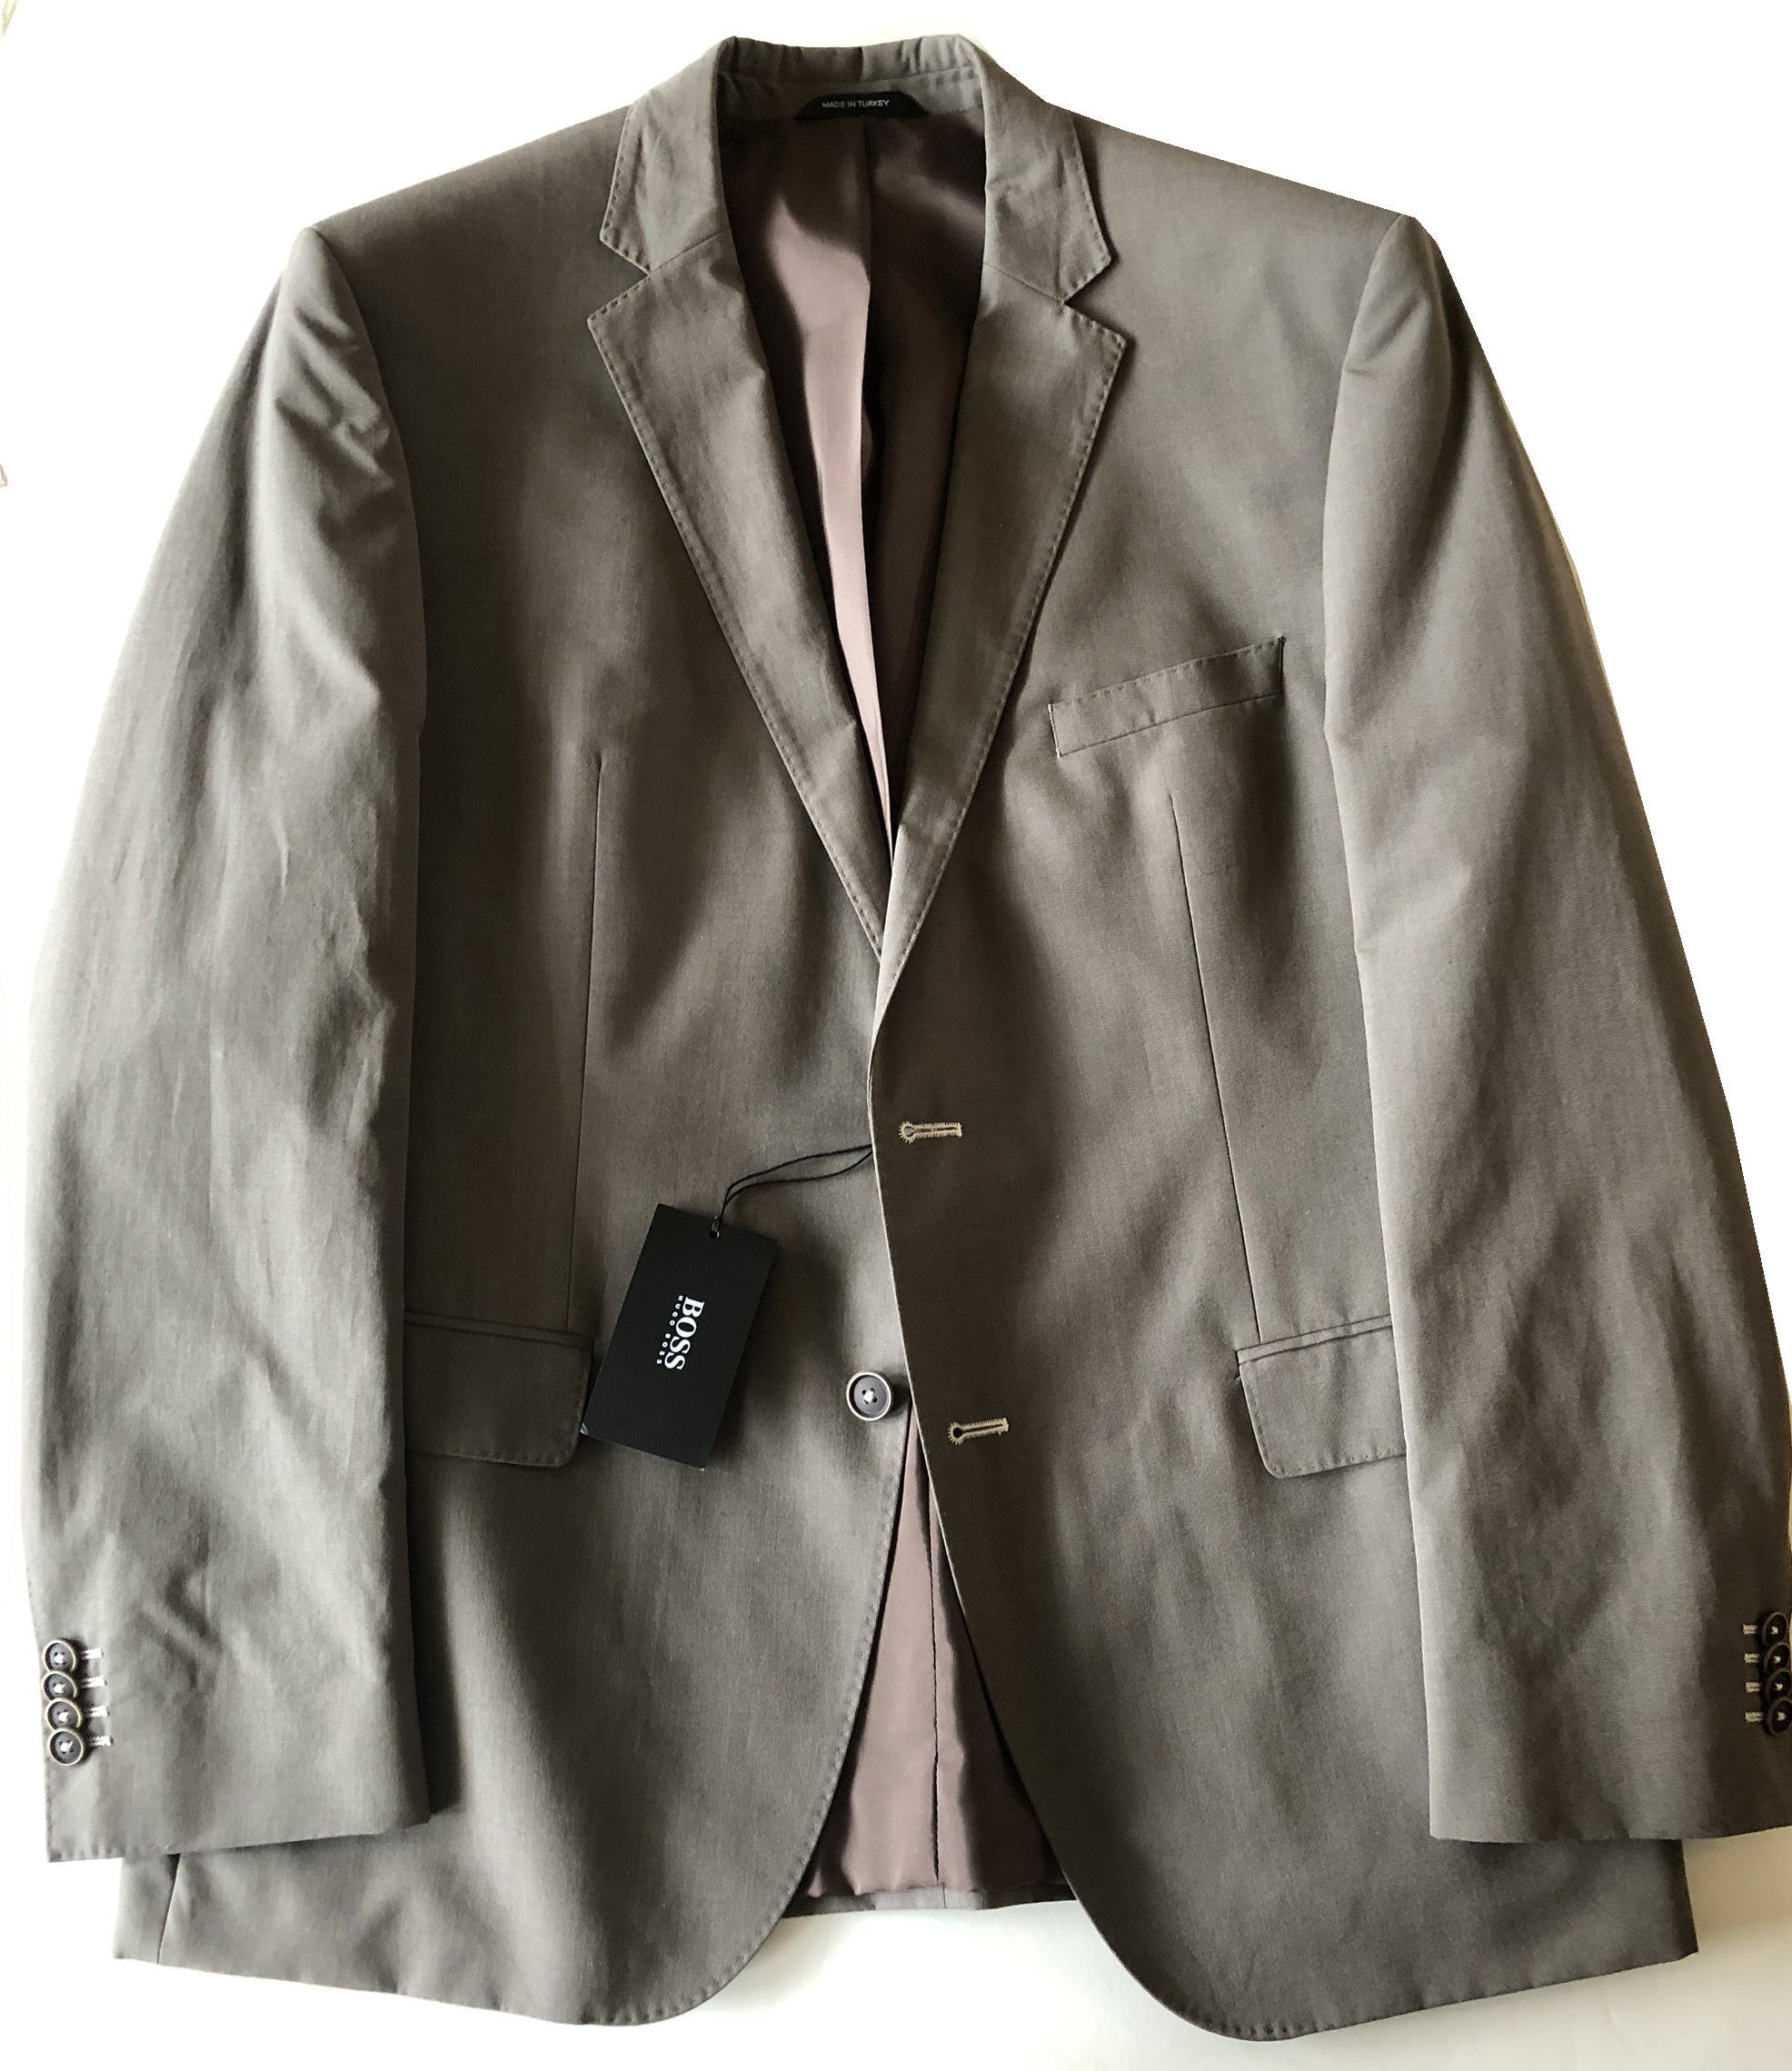 efddc3c37 Hugo Boss Mens Solid Olive The Keys1/Shaft Cotton Suit. Tap to expand